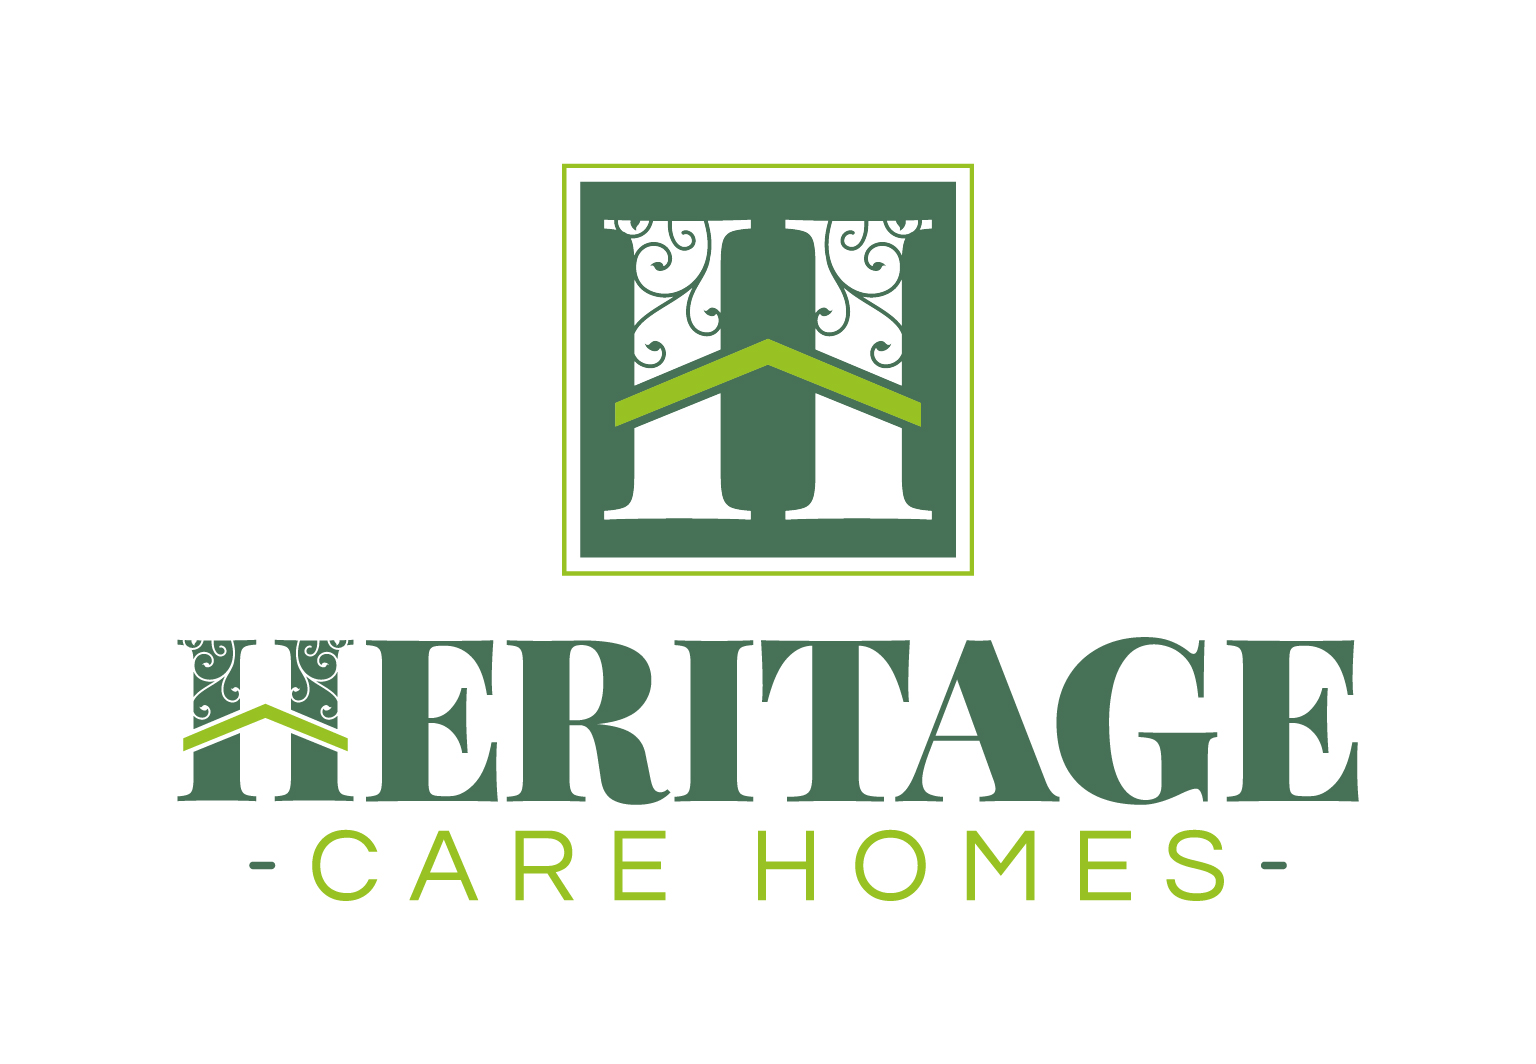 Heritage Care Homes in Luton